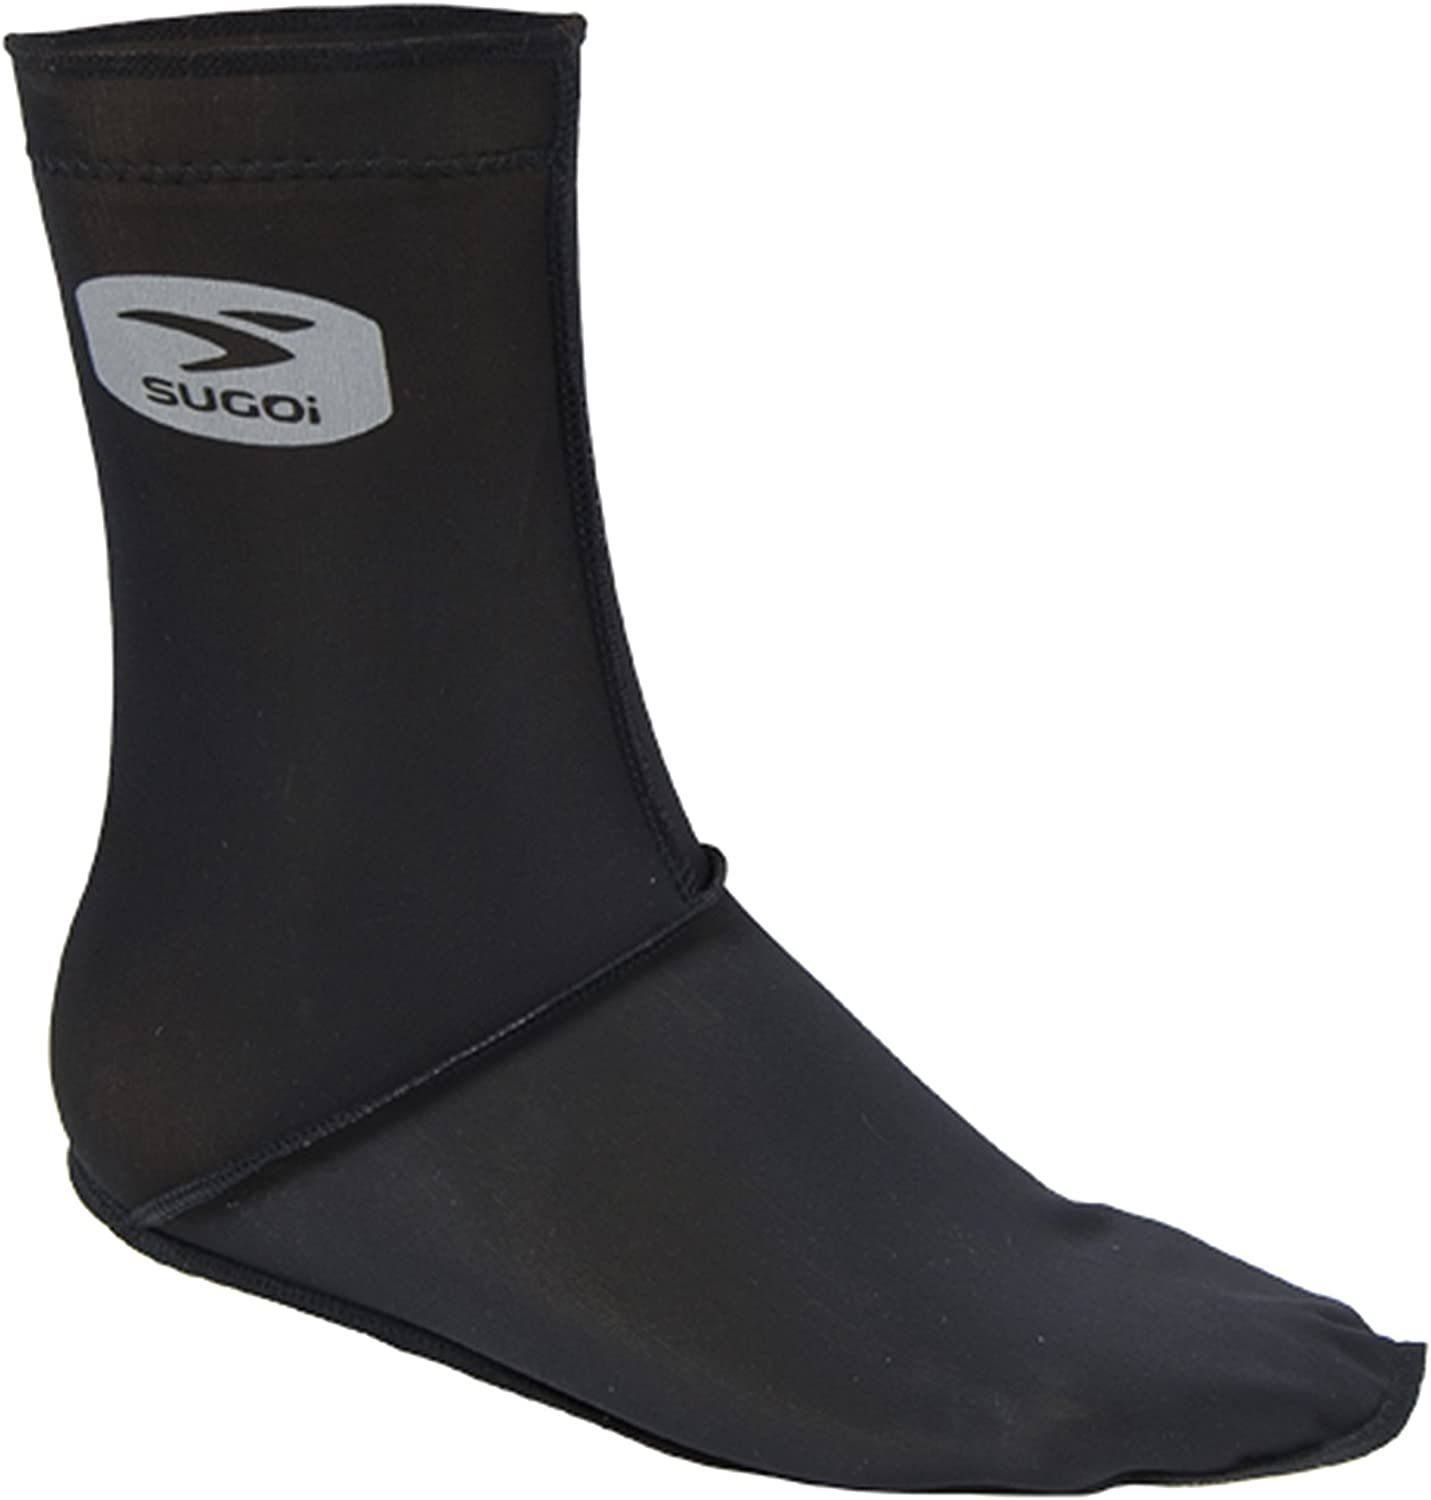 SUGOi Unisex Resistor Ranking Special price for a limited time TOP20 Sock